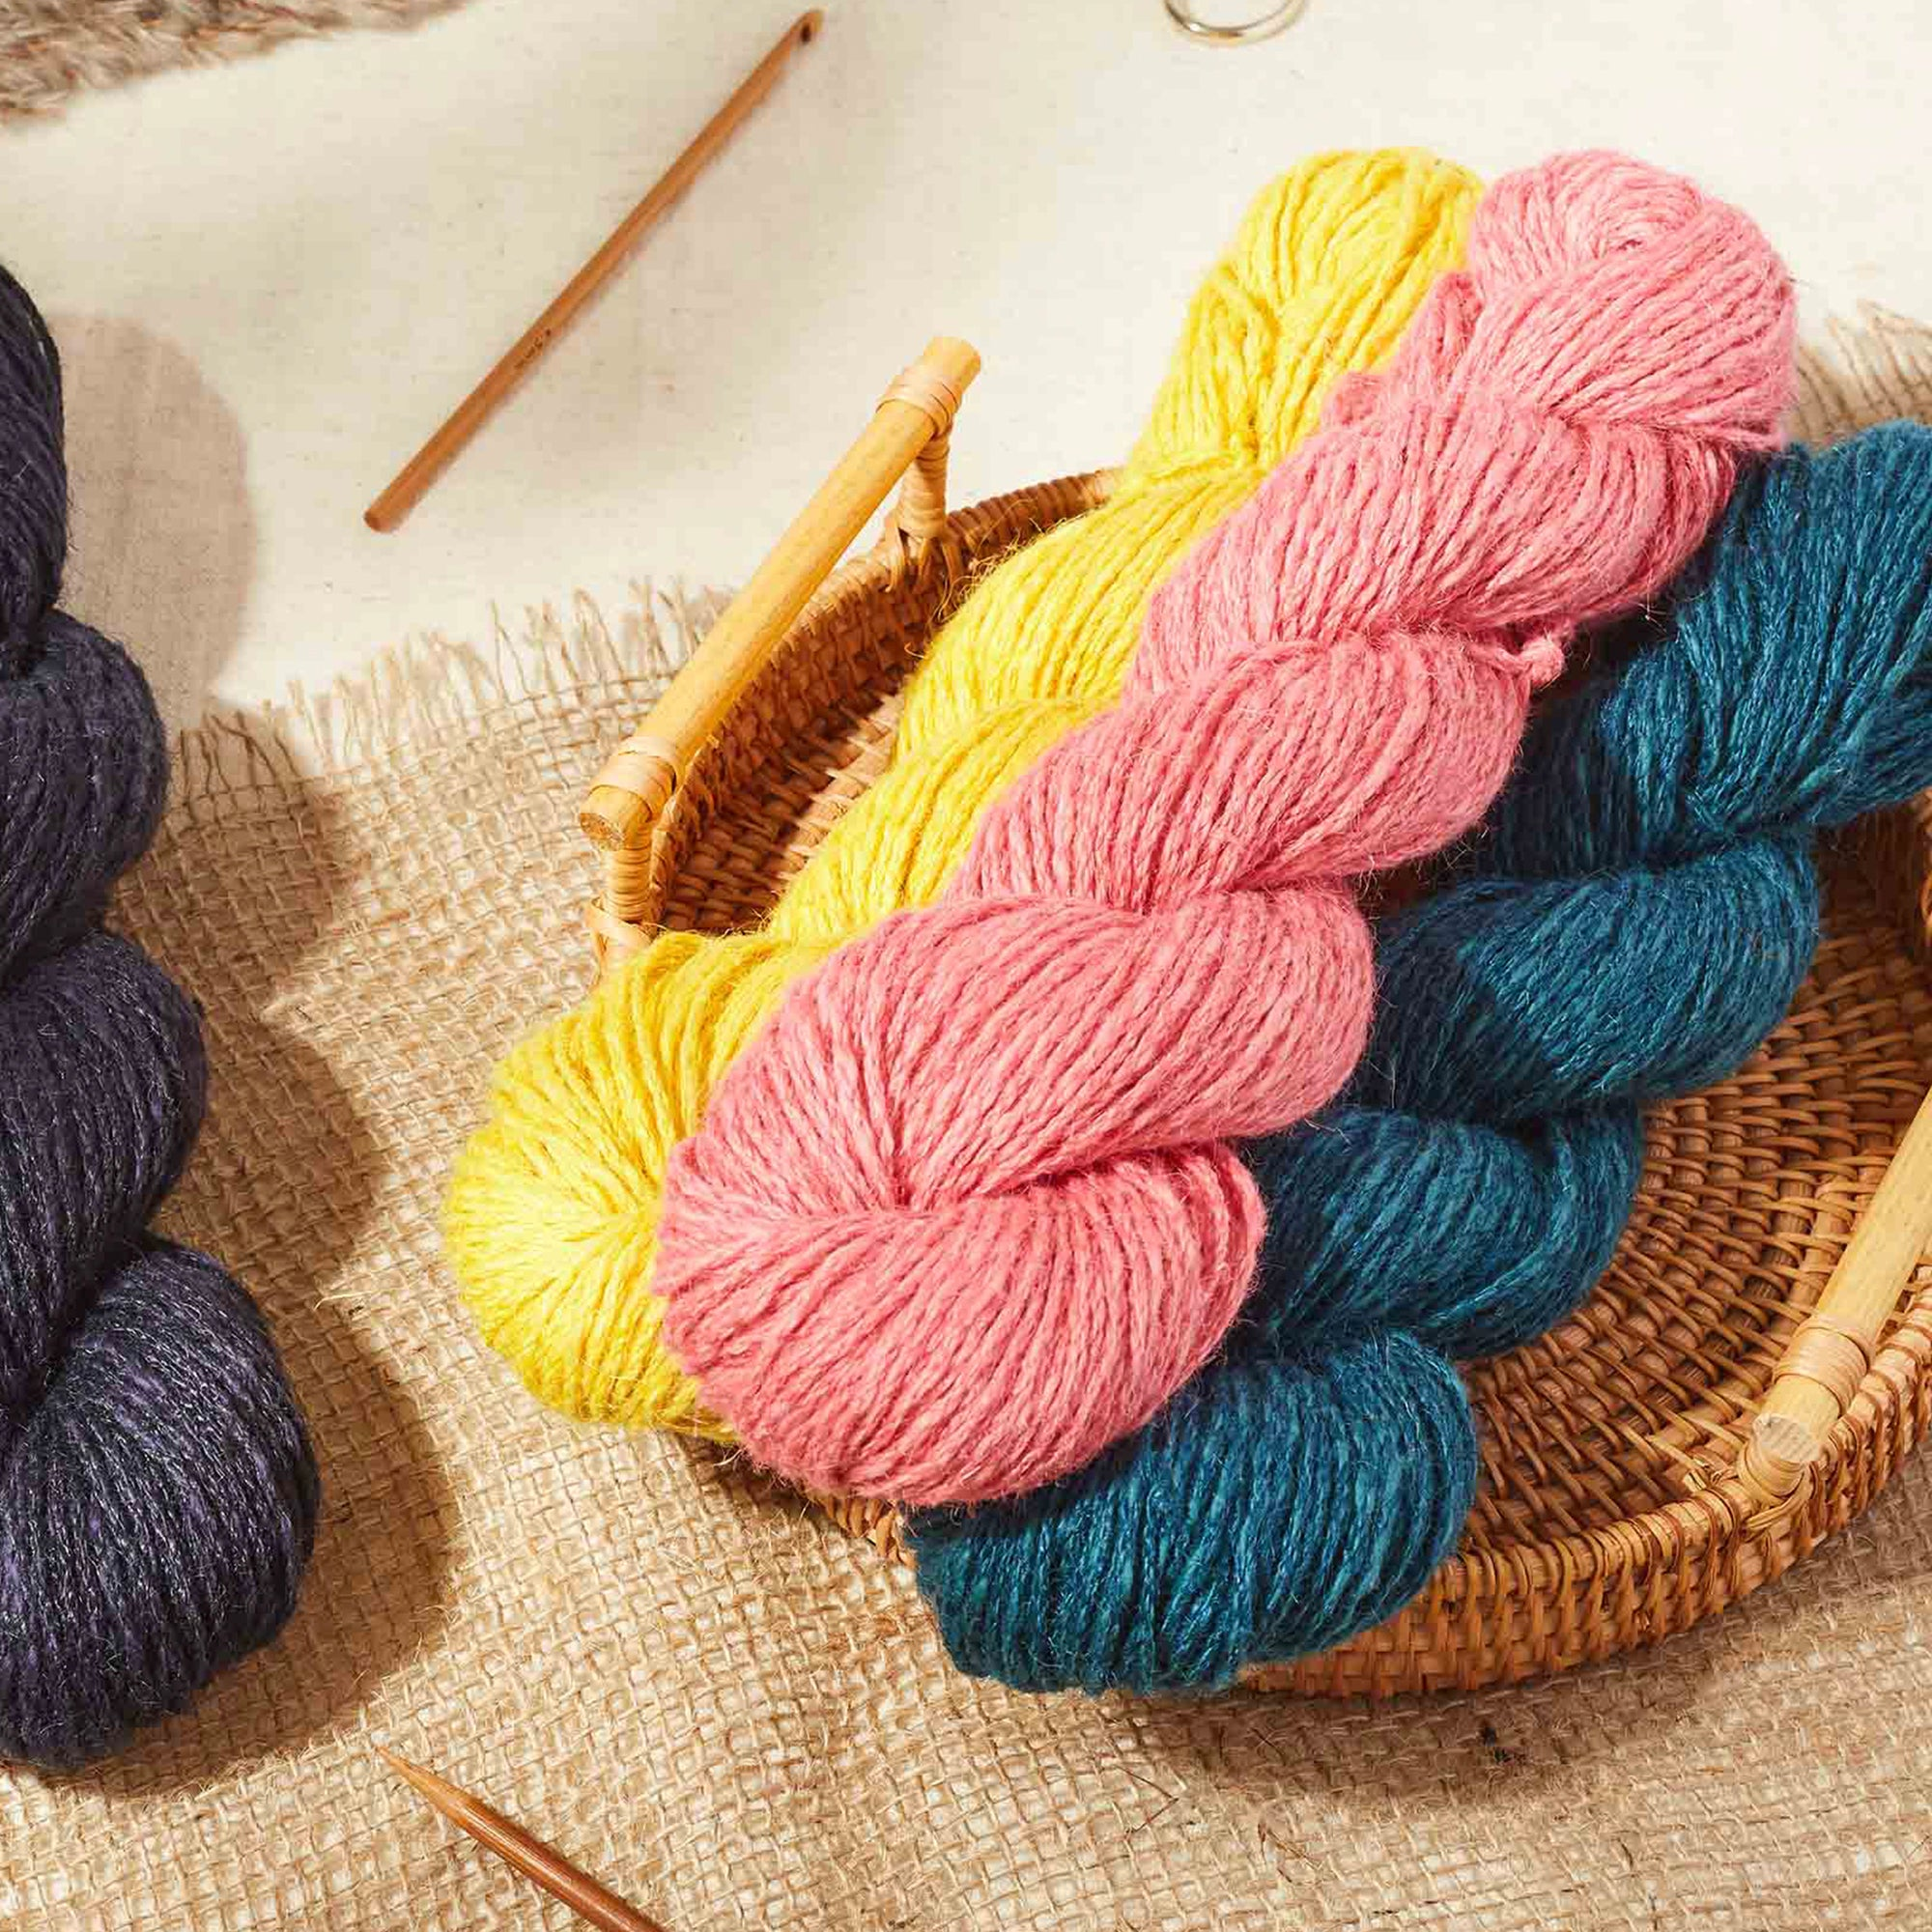 The Everyday Jute 100g Balls